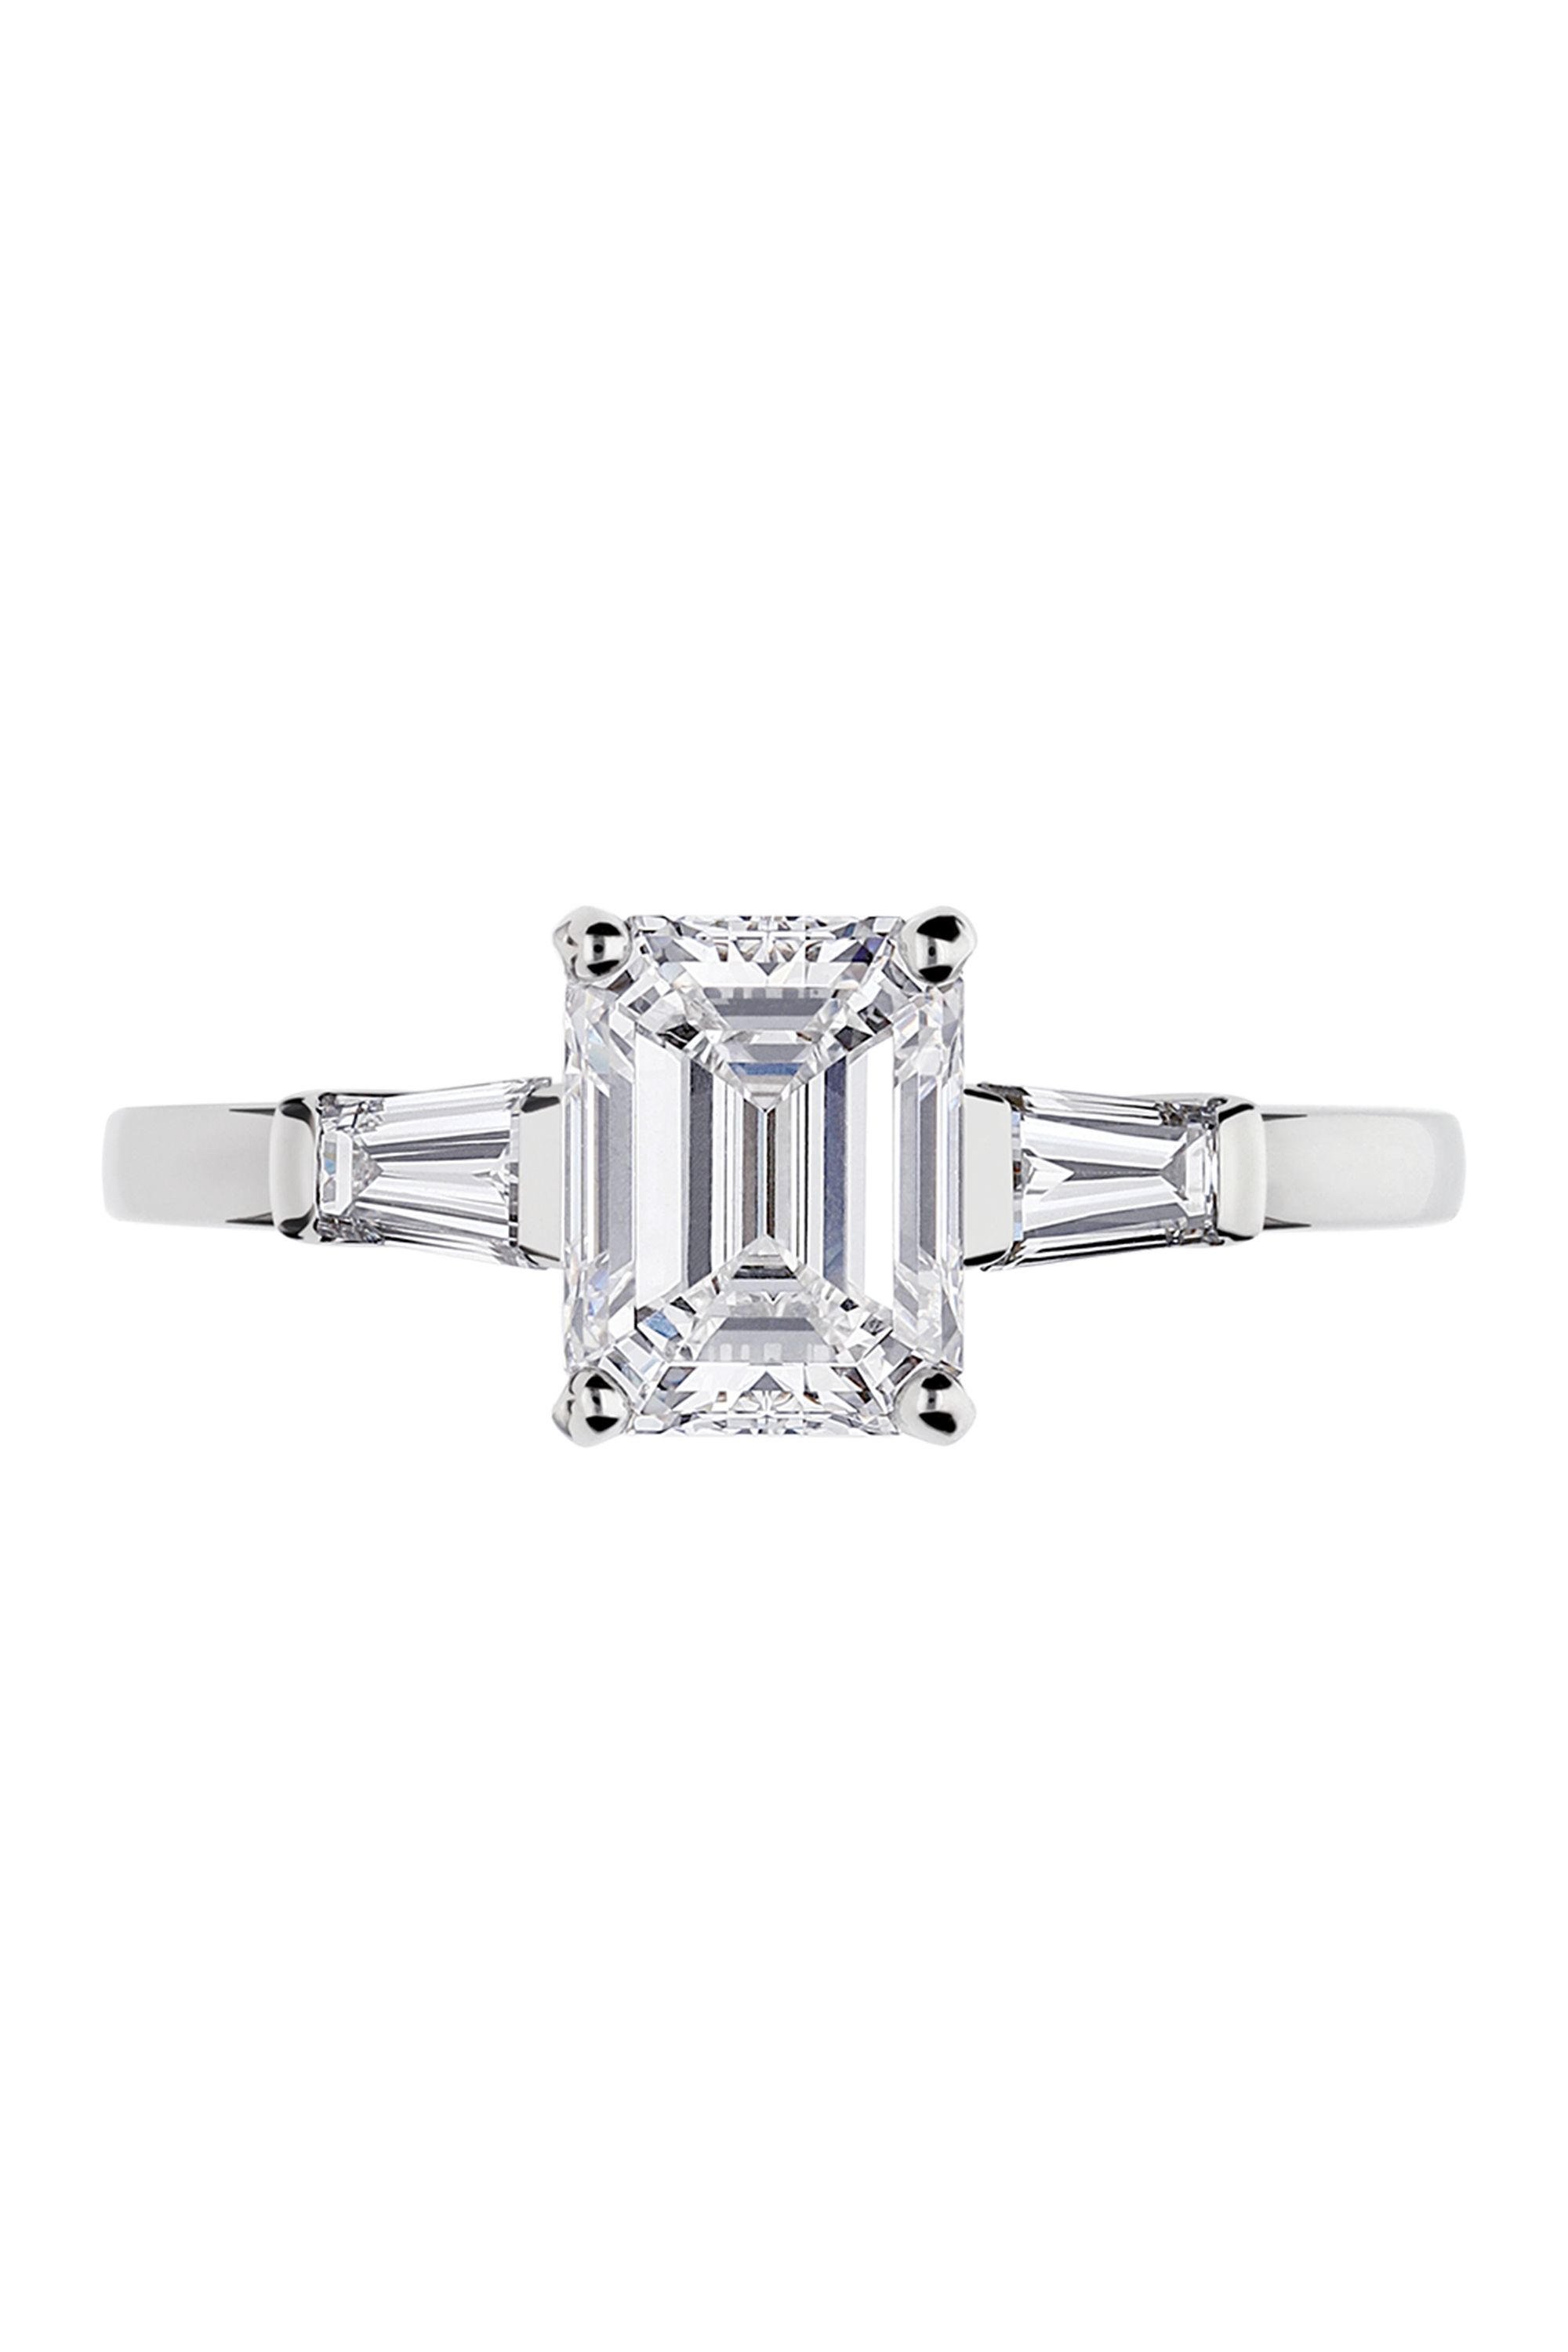 9336a357a6 Our guide to the best engagement rings - designer and classic engagement  rings